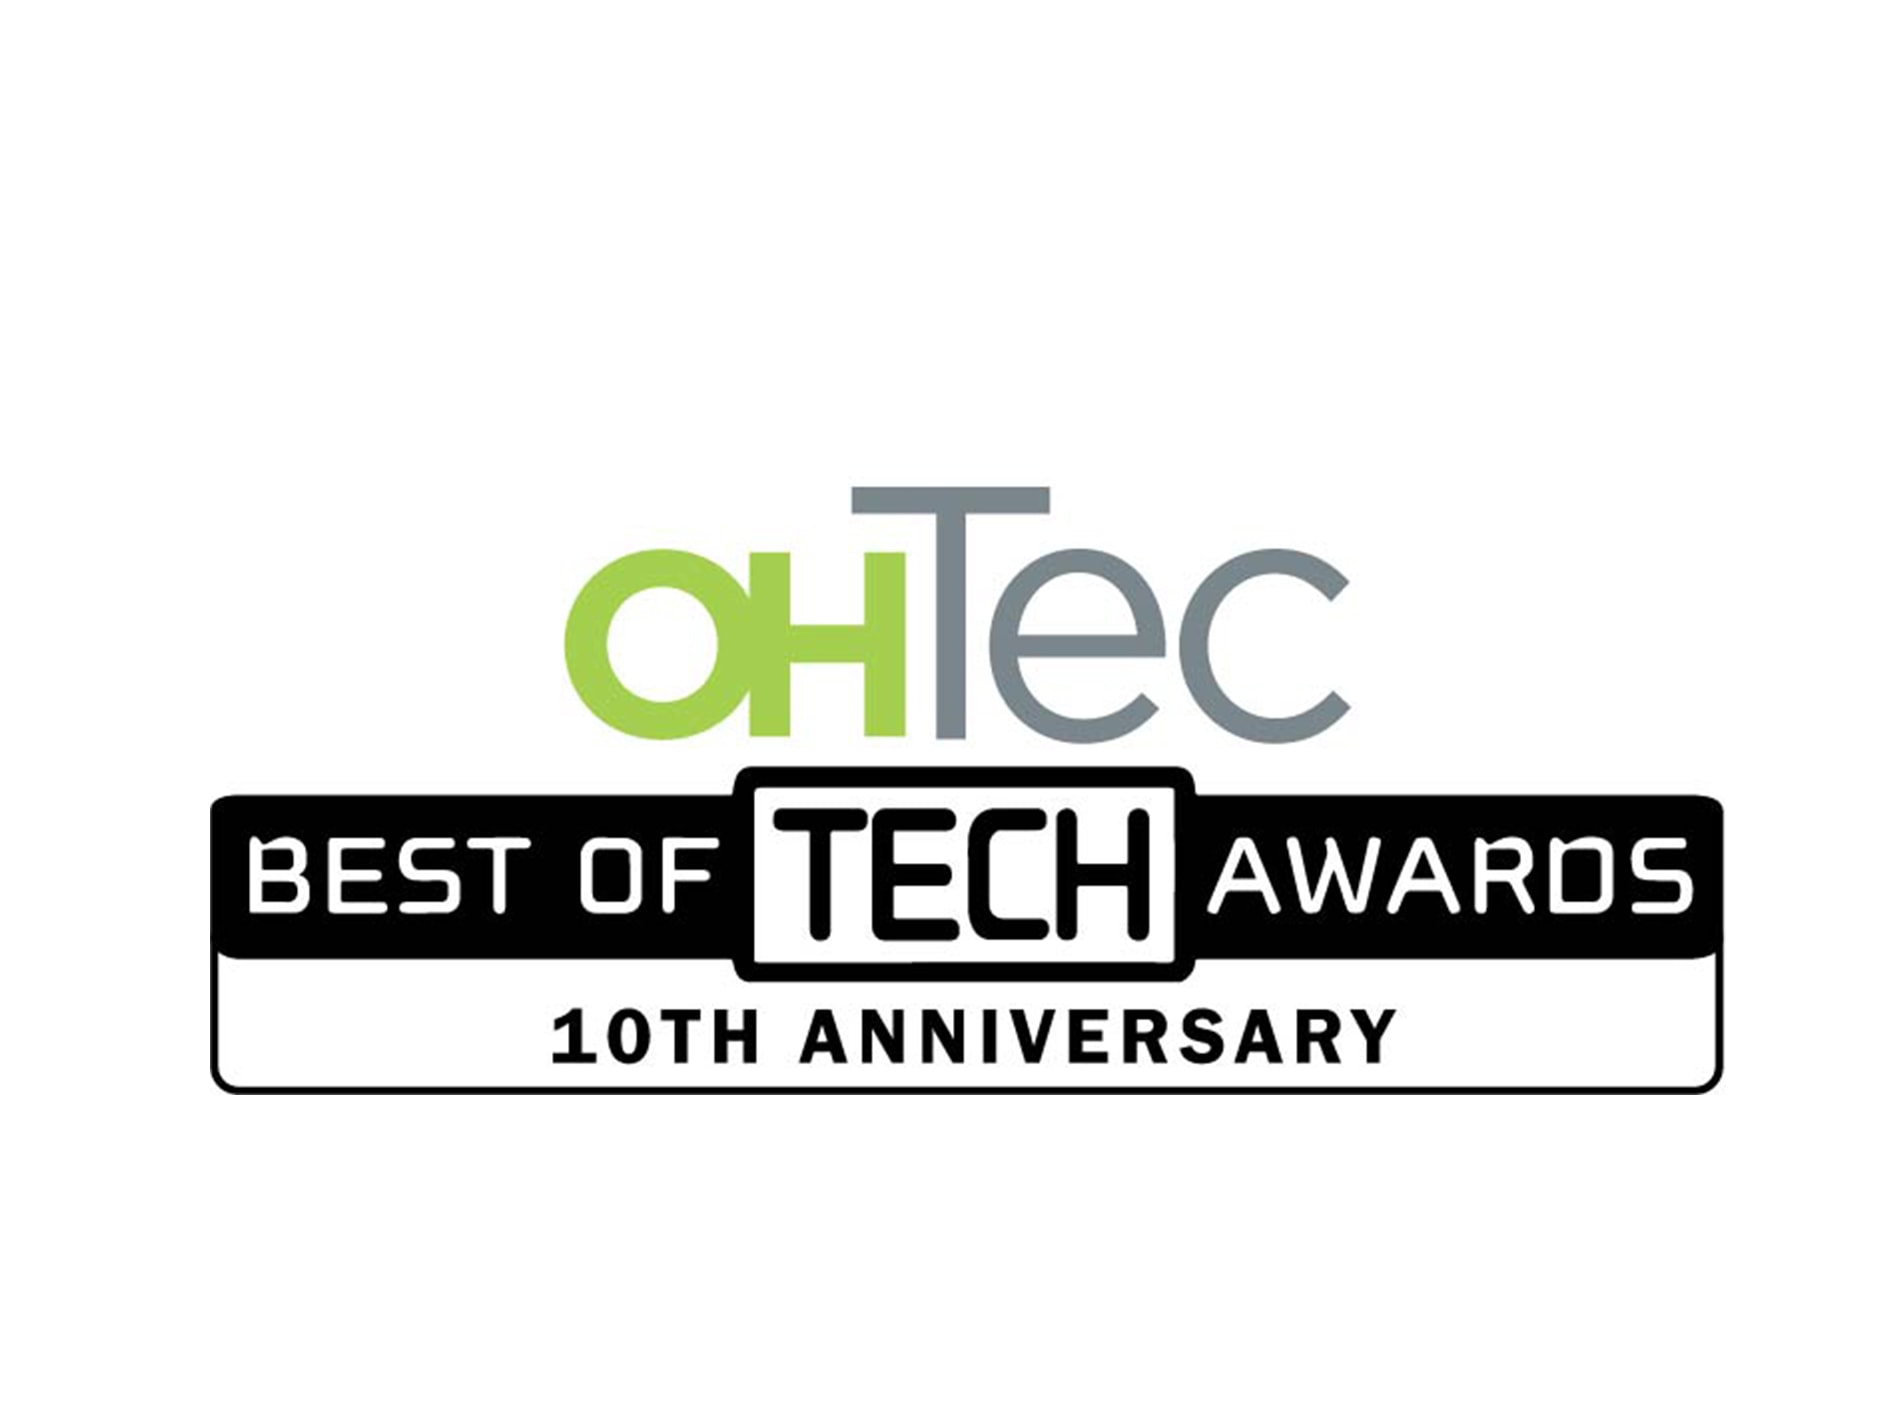 MRI Version X Wins OHTec Award for Best Software Product